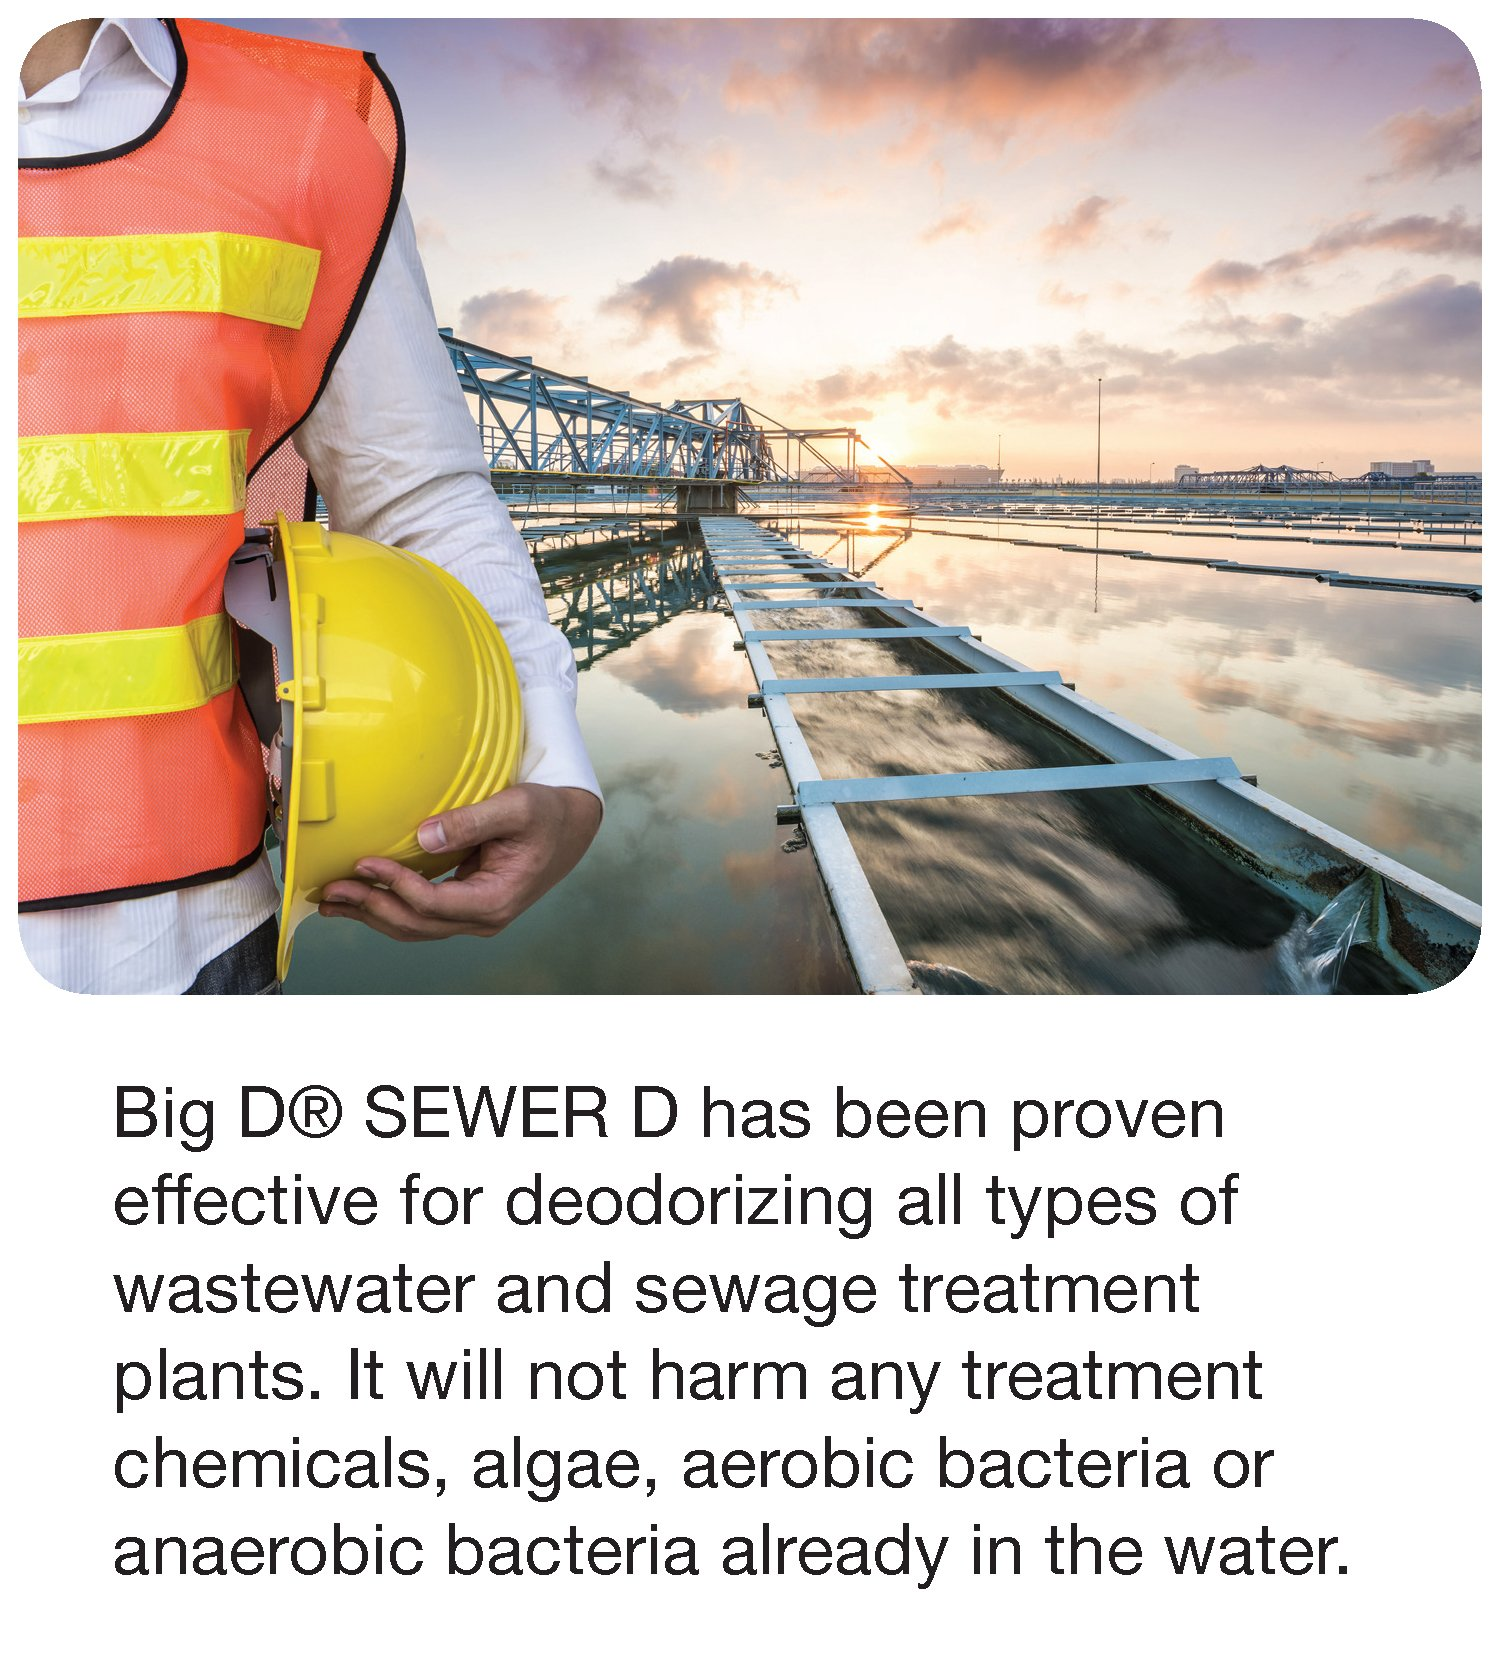 Big D 5597 Sewer D Deodorant for Water Treatment and Sewage Disposal Plants, Natural Fragrance, 5 Gallon Pail - Kills Odors, Non-Flammable, Non-Toxic, Will not Change Properties of Water by Big D (Image #4)